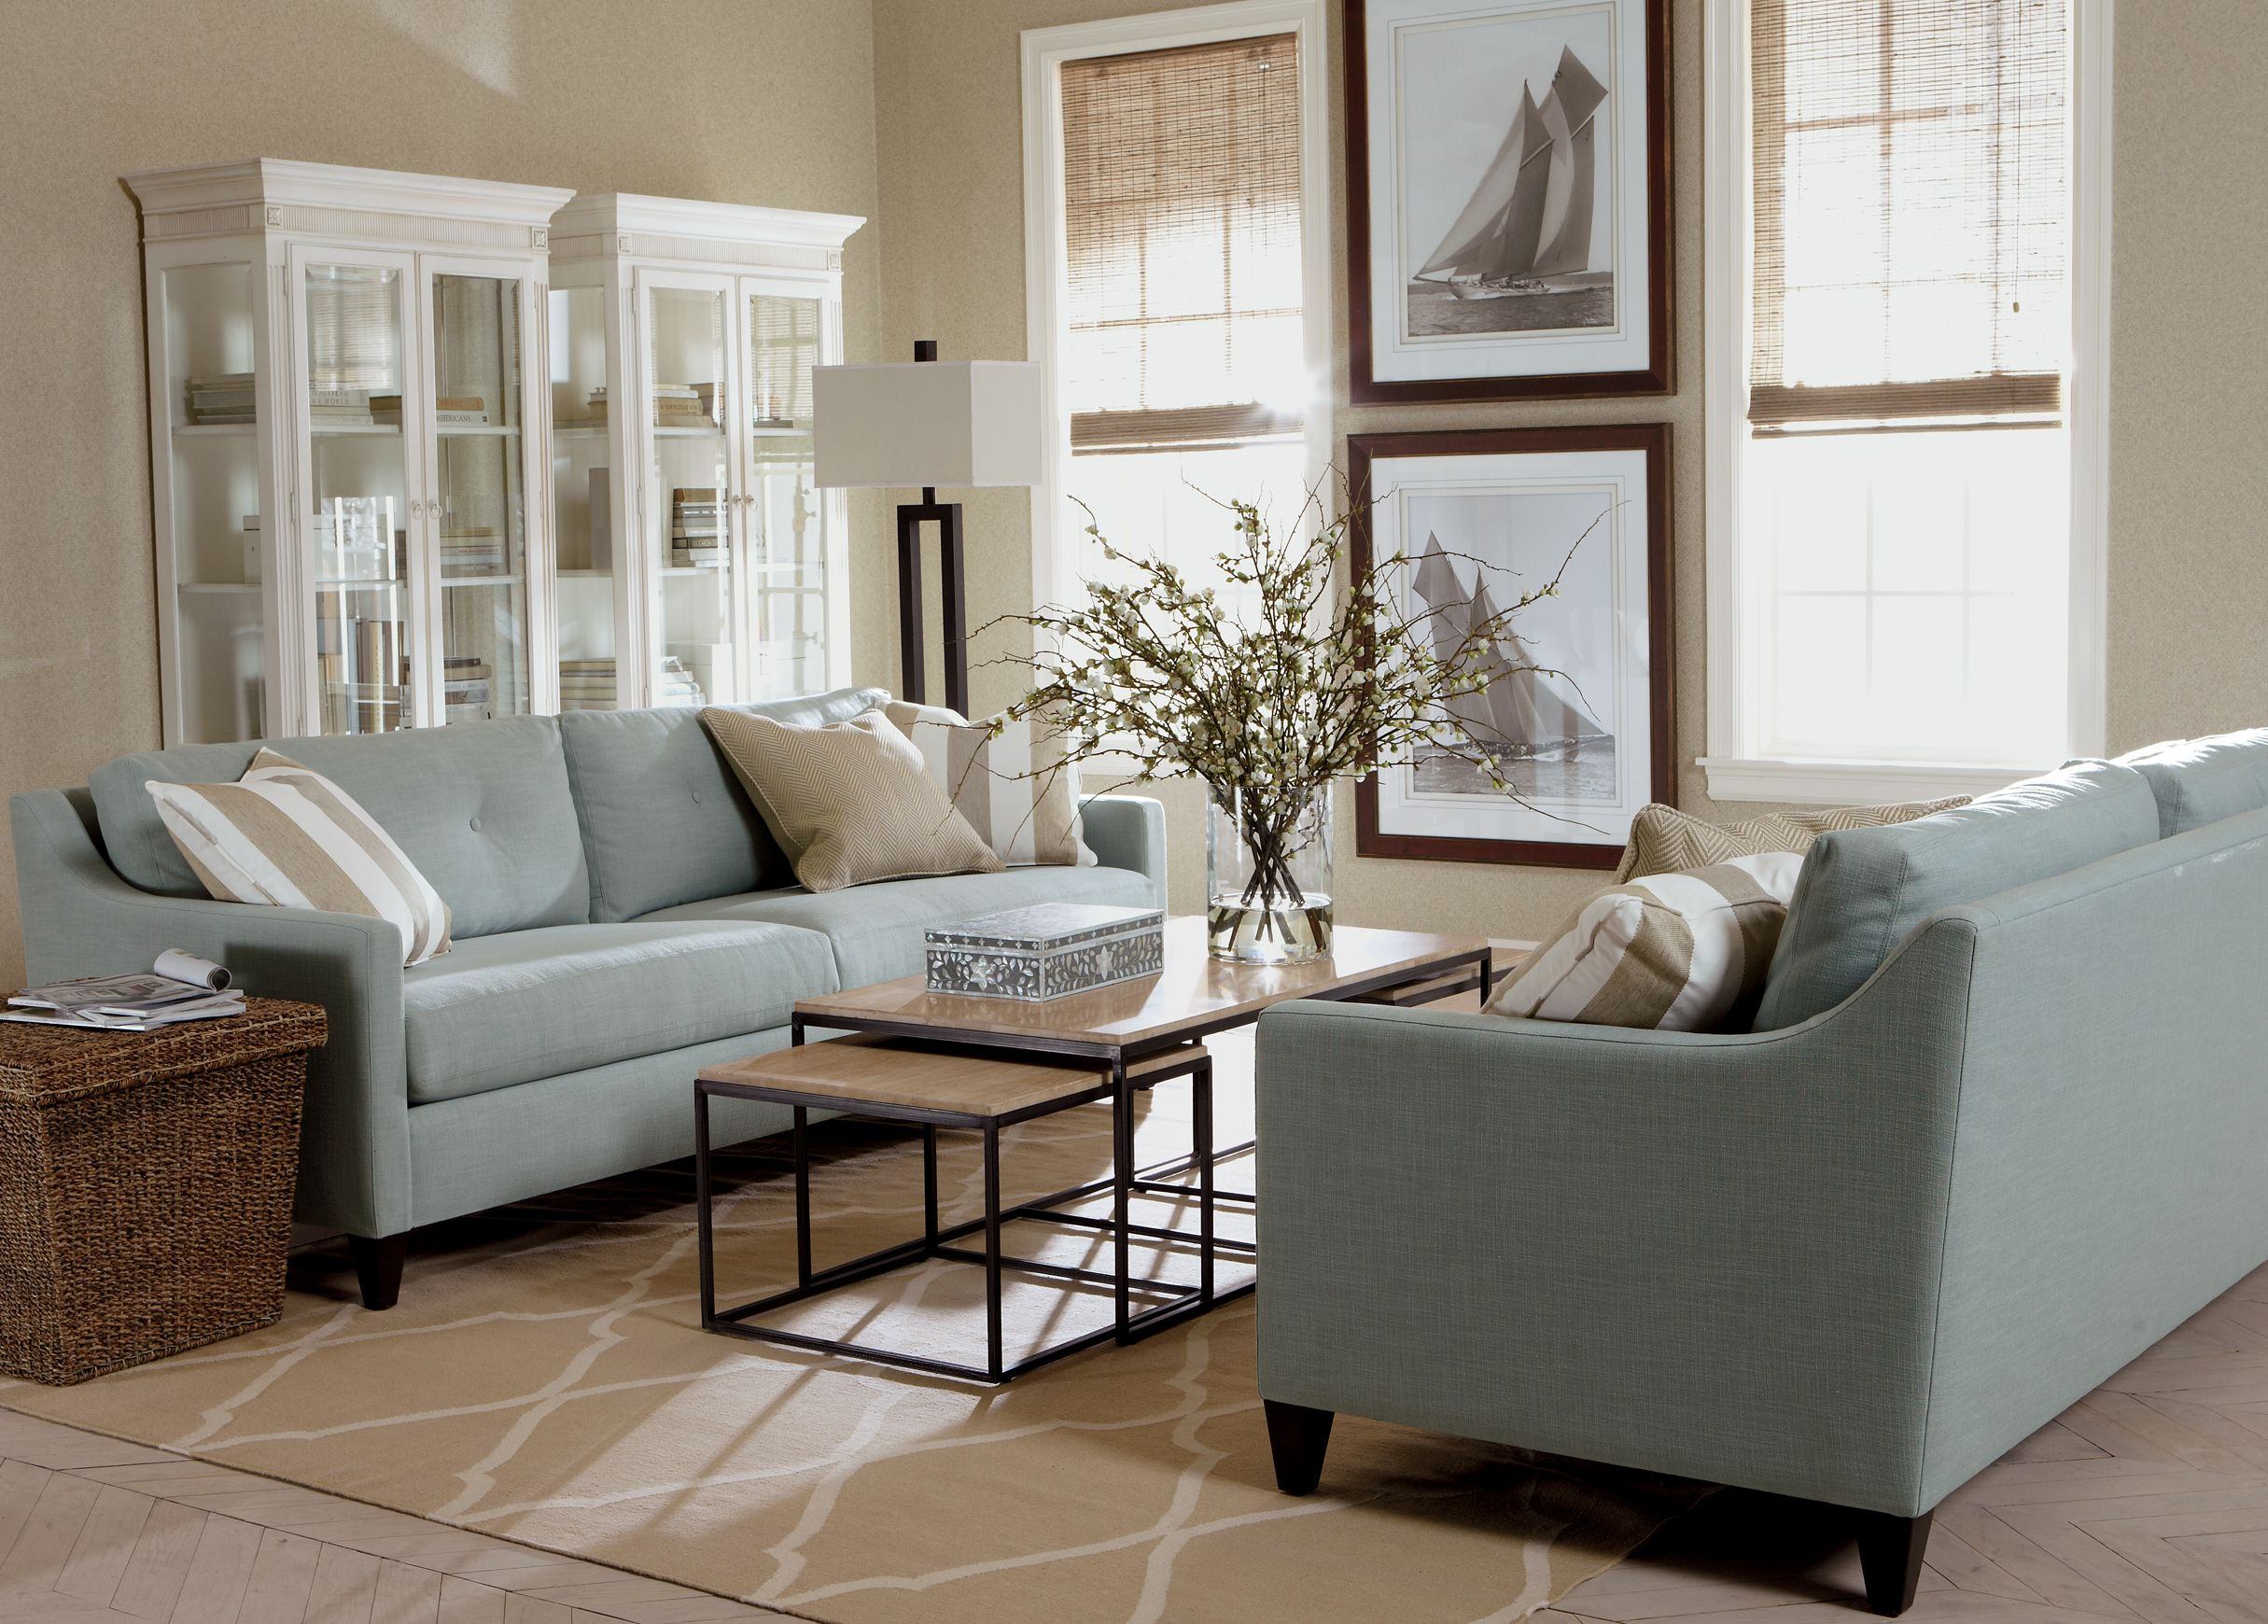 Delicieux Beach Chic Living Room | Ethan Allen, Couches And Tables